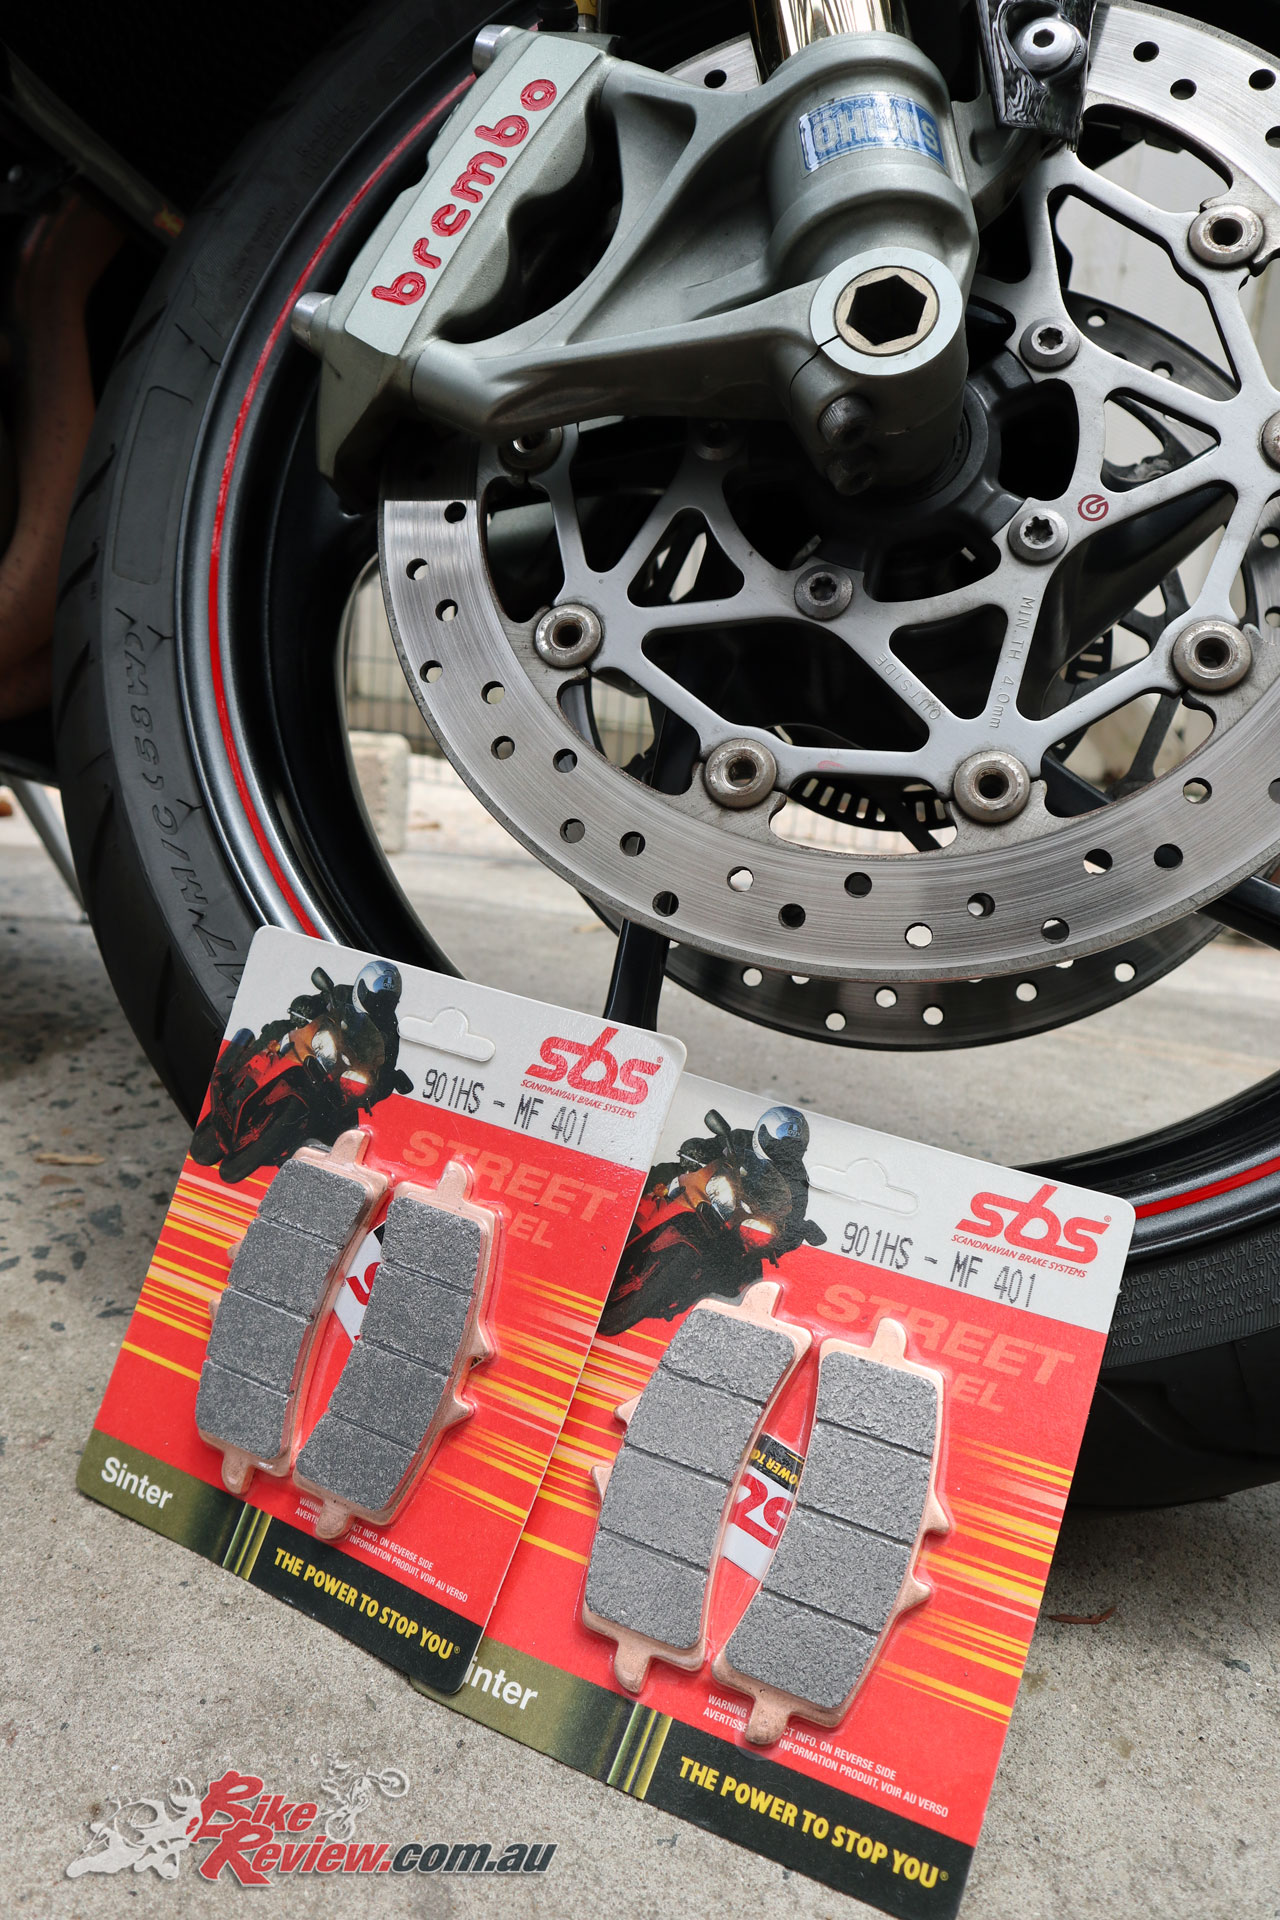 Here's the SBS Street Excel HS Brake pads ready for installation